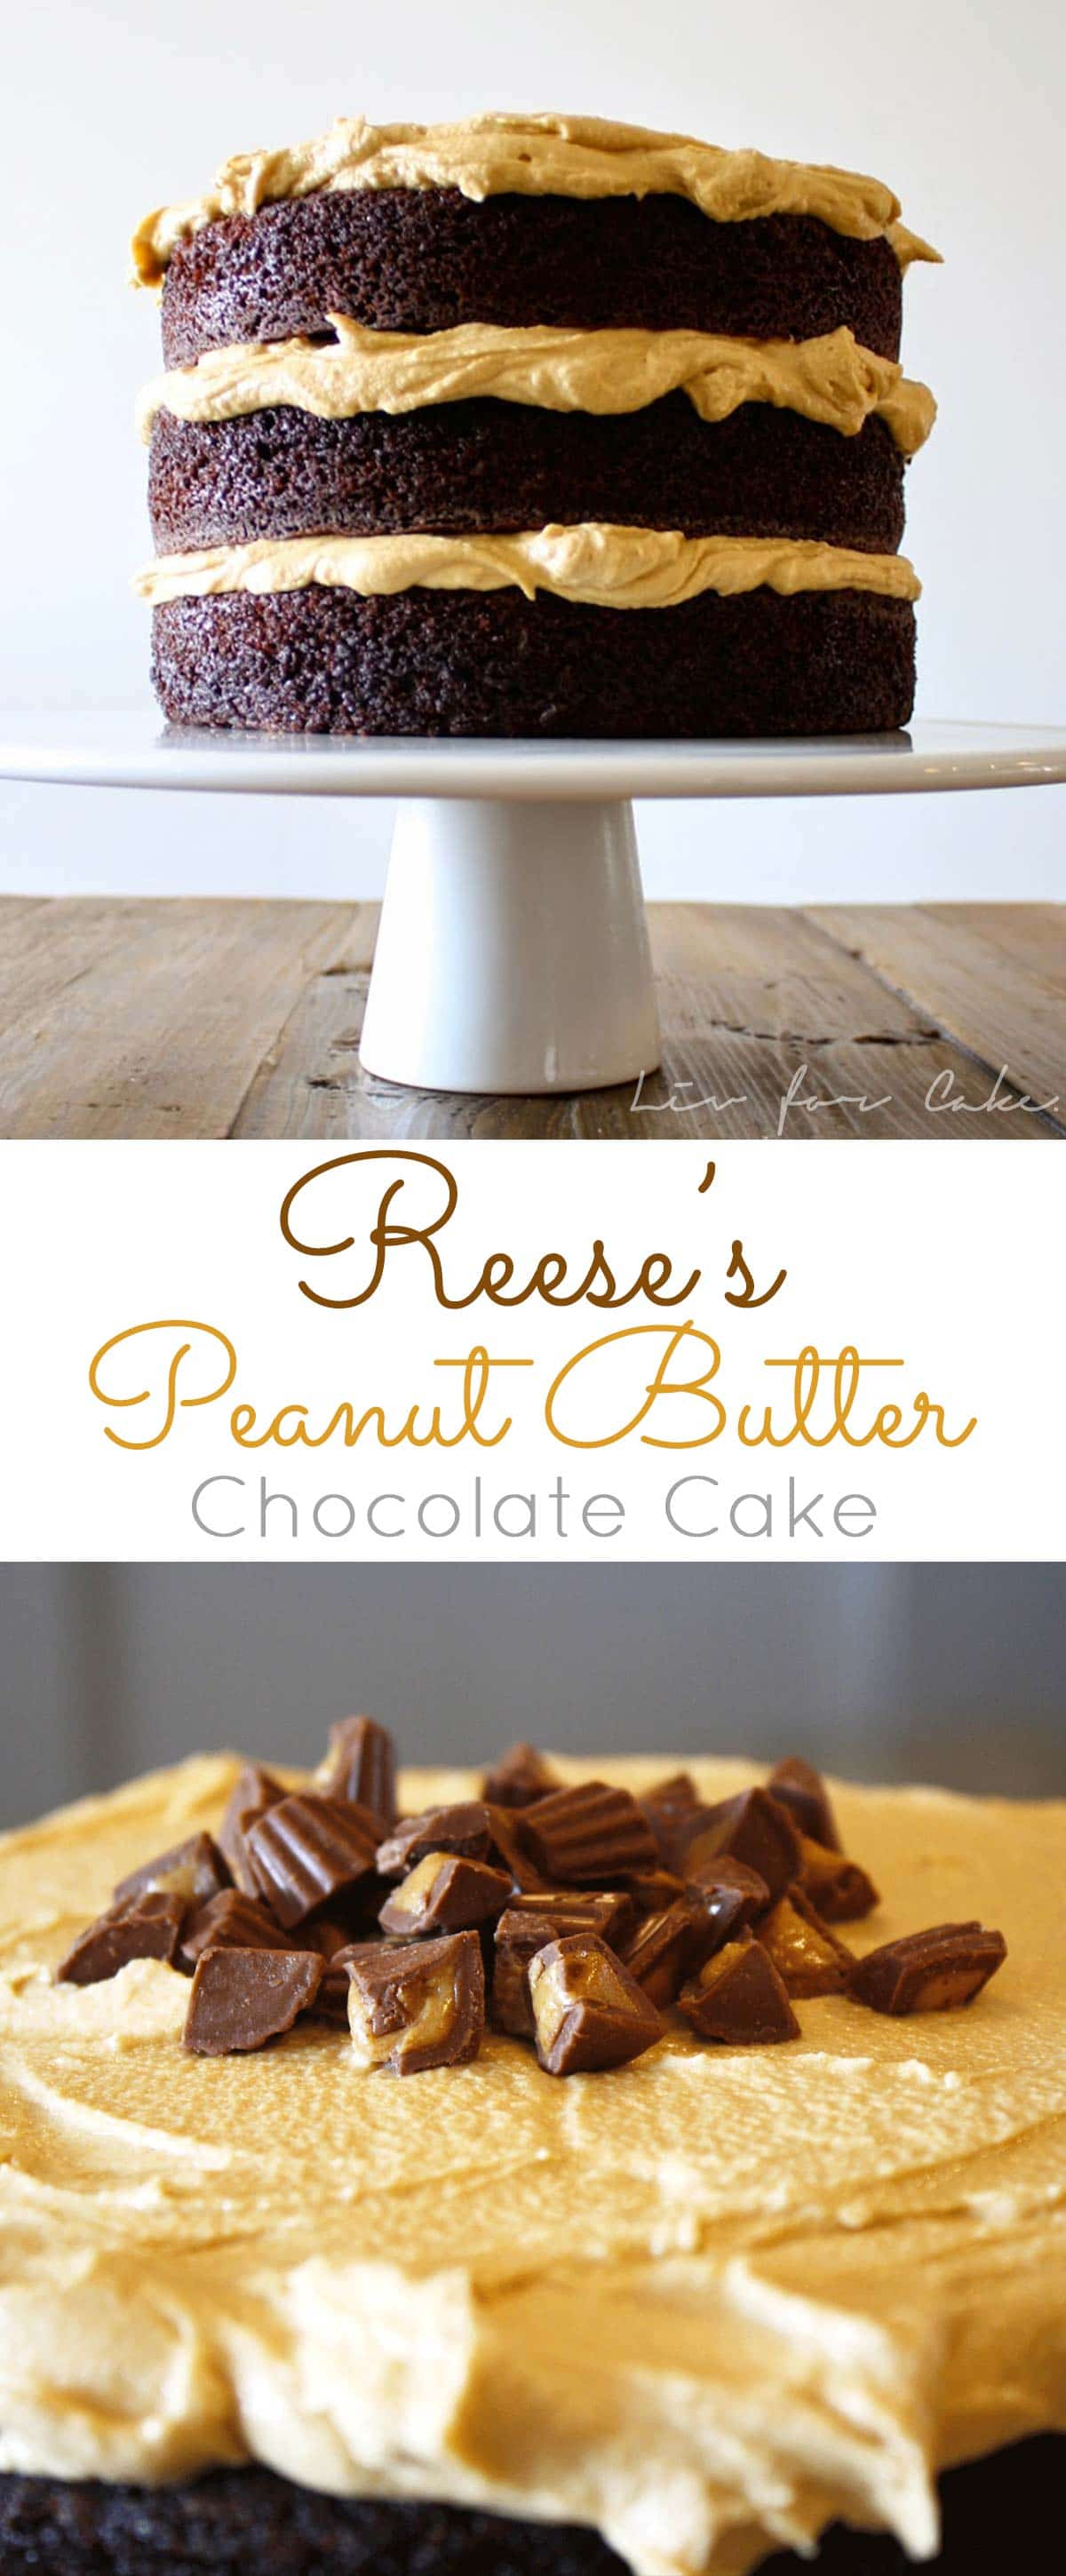 Reese's Peanut Butter Chocolate Cake! A rich and delicious chocolate cake with a whipped peanut butter frosting and mini Reese's peanut butter cups. | livforcake.com